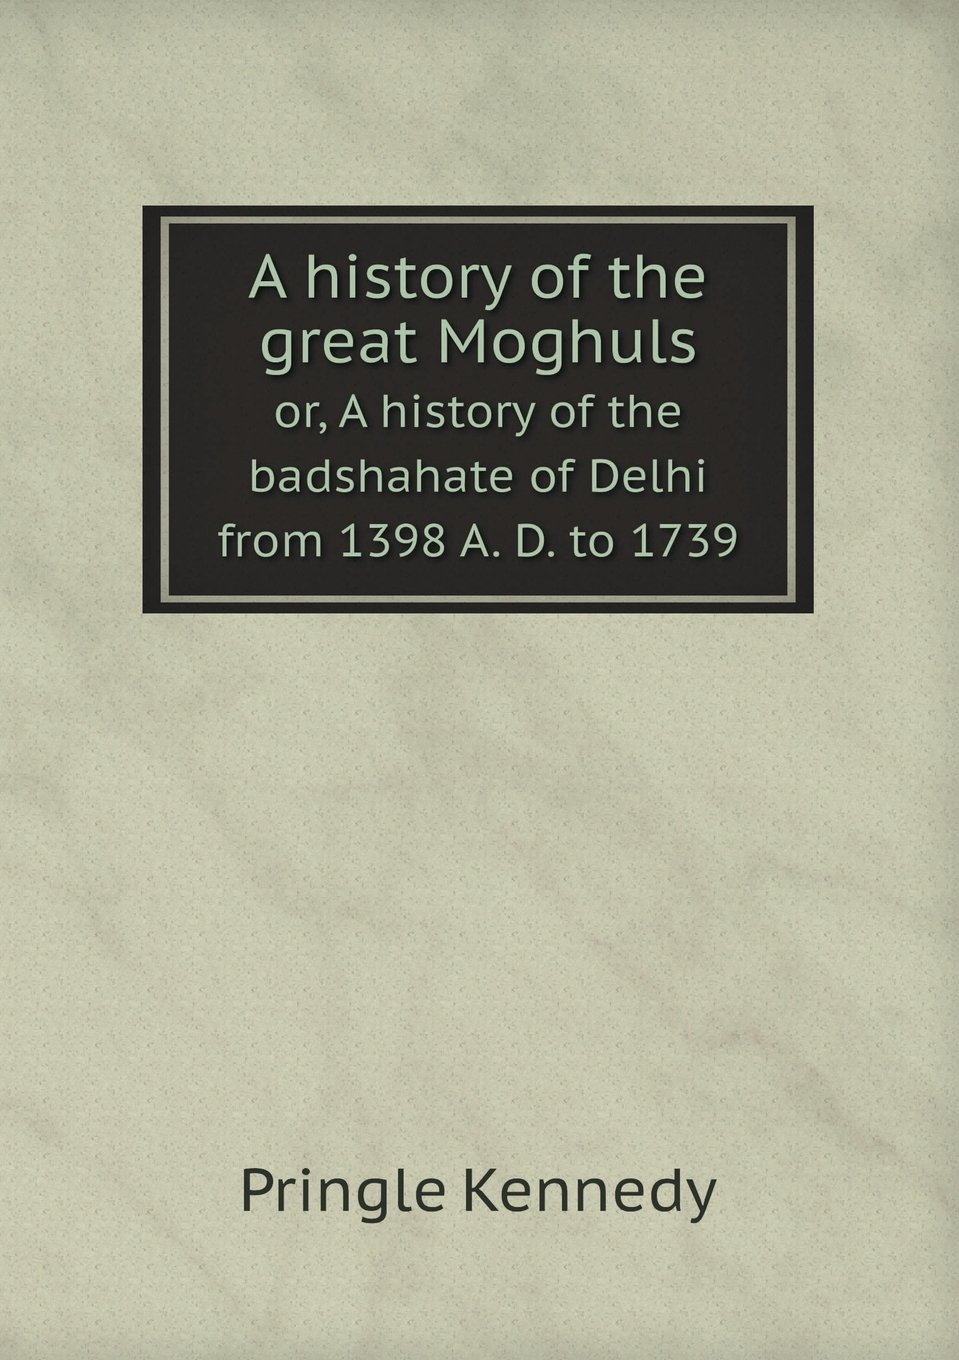 Read Online A history of the great Moghuls or, A history of the badshahate of Delhi from 1398 A. D. to 1739 ebook